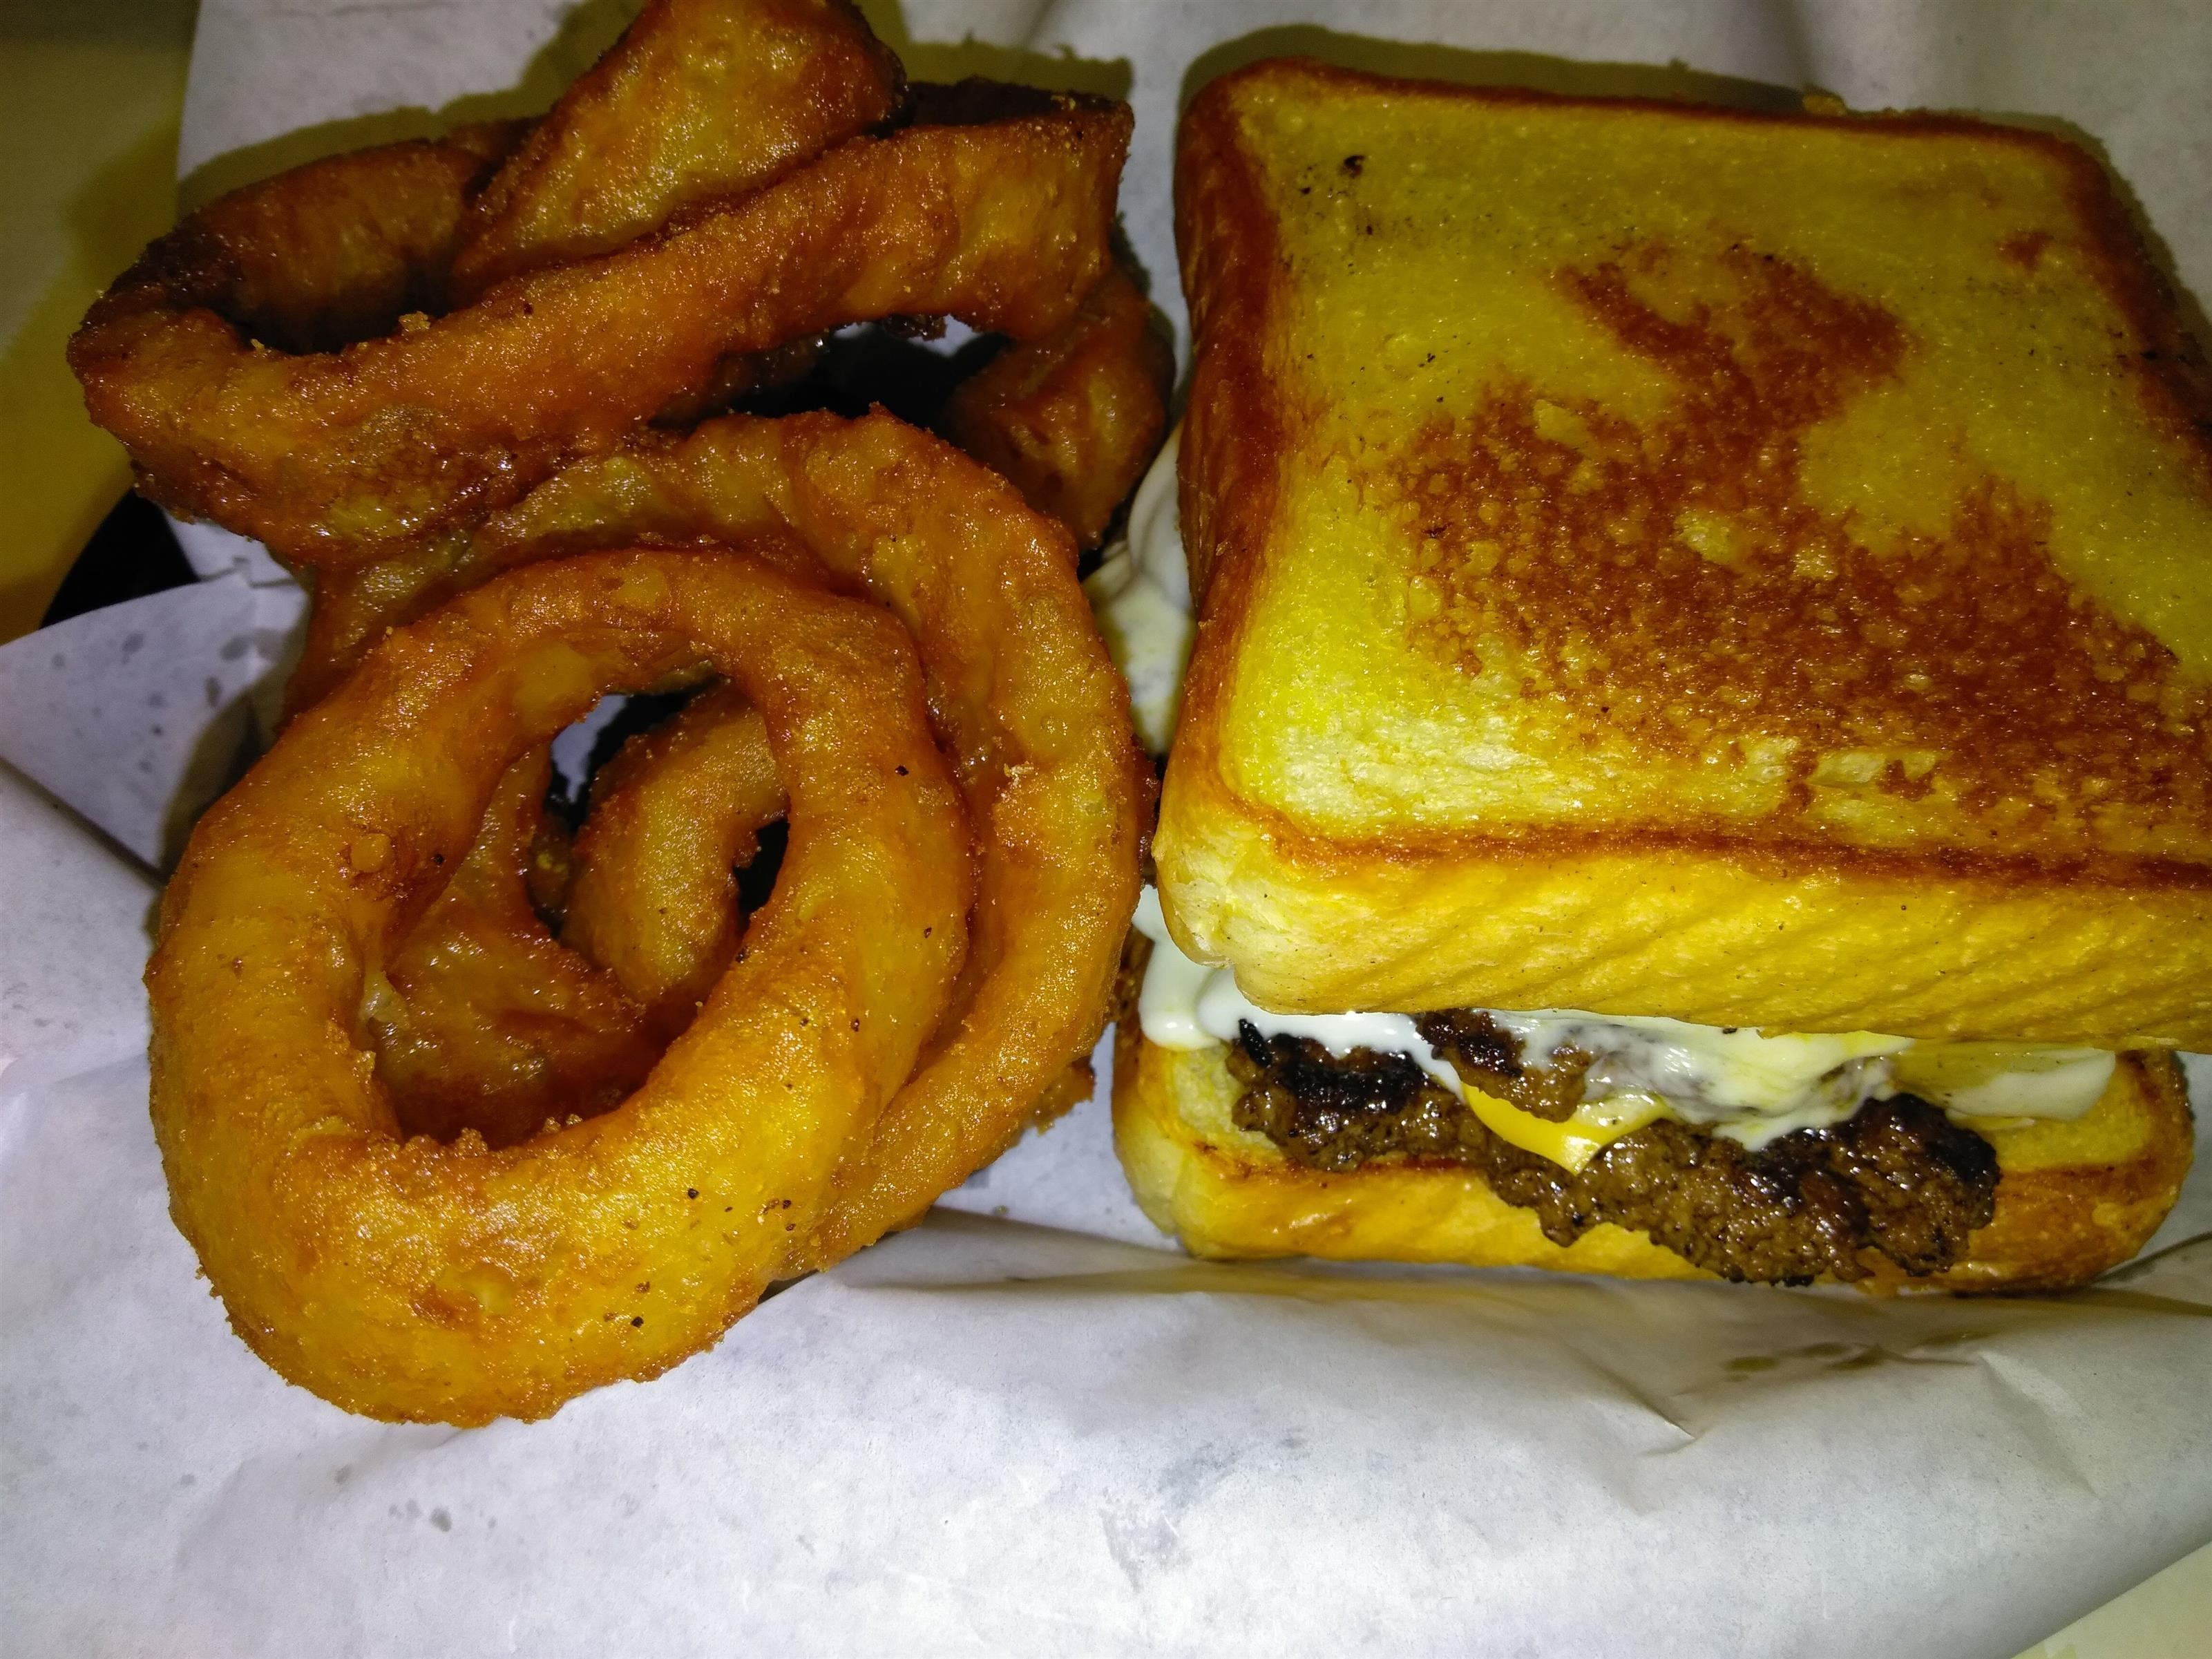 A cheese burger on toast with a side of onion rings